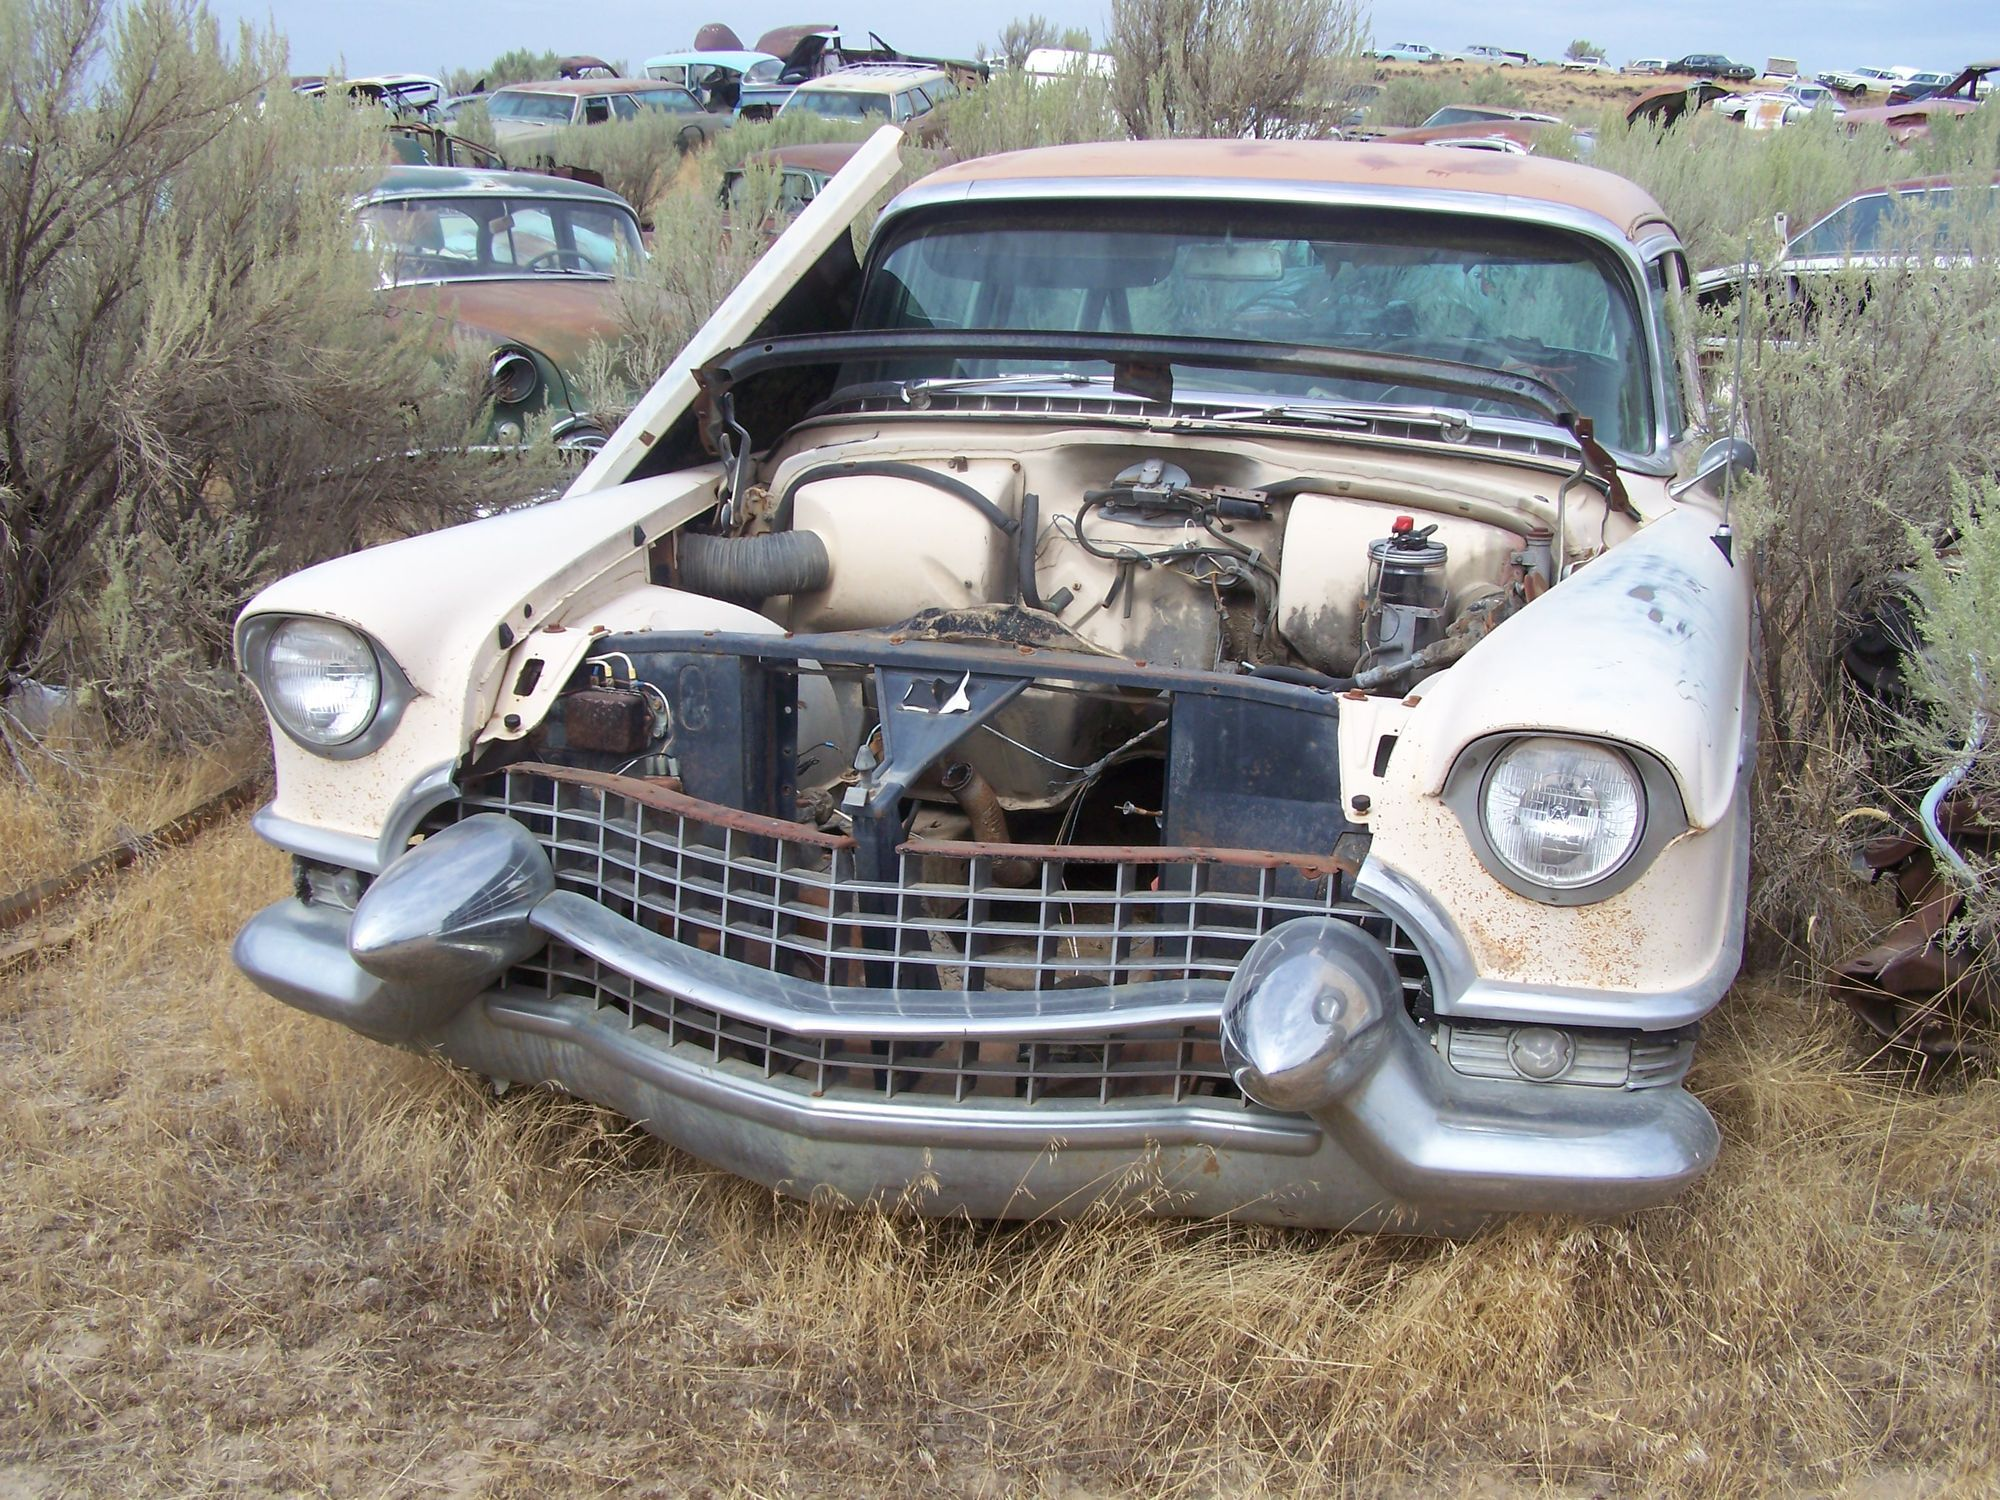 Junkyard tours – 8,000 cars revisited | Cars, Barn finds and ...